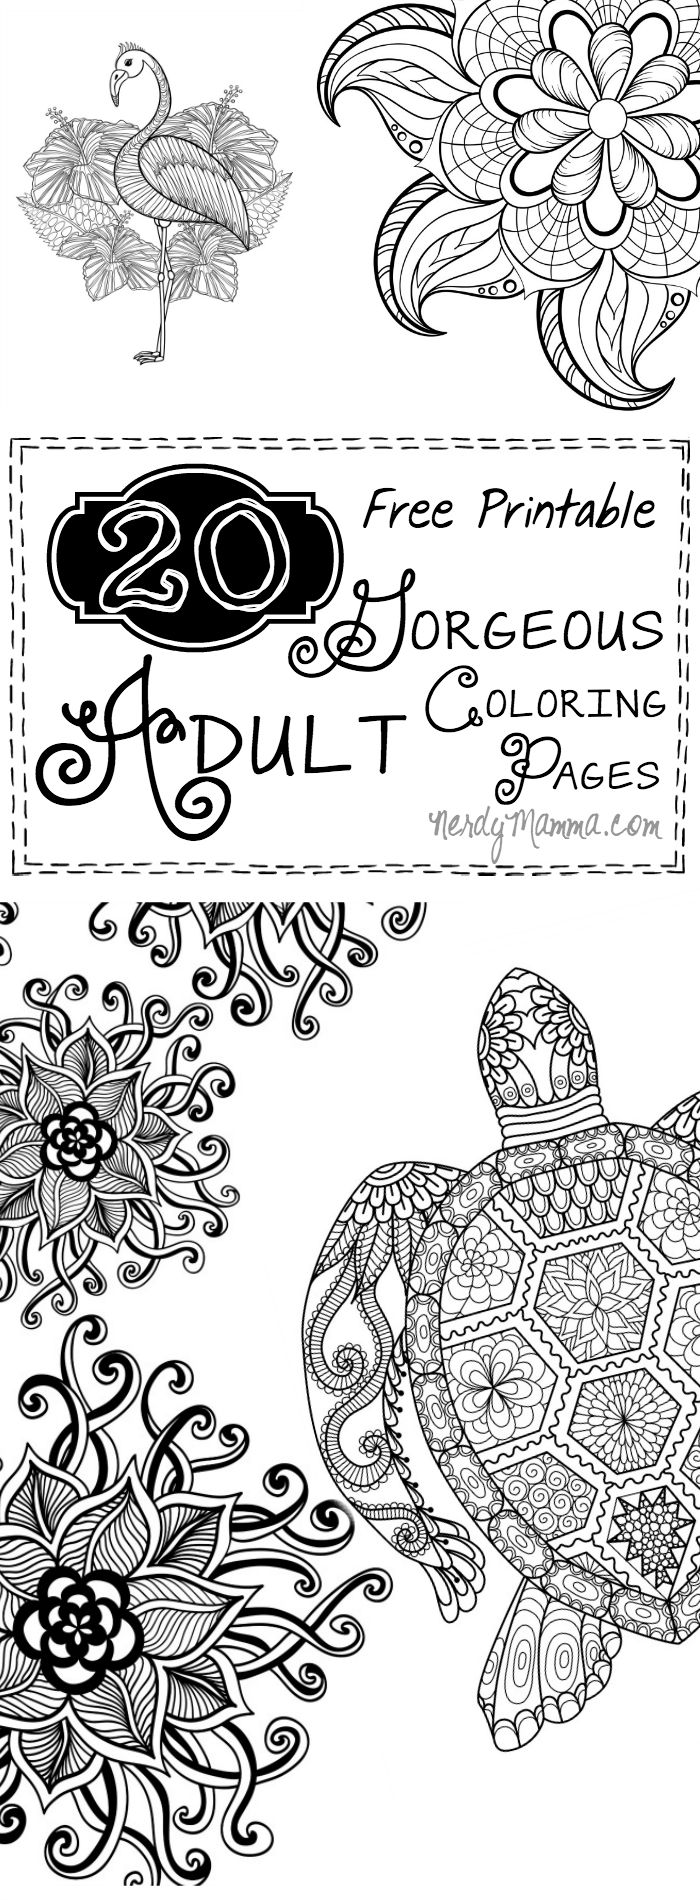 Asphalt 8 coloring pages - Asphalt 8 Coloring Pages 20 Gorgeous Free Printable Adult Coloring Pages Download